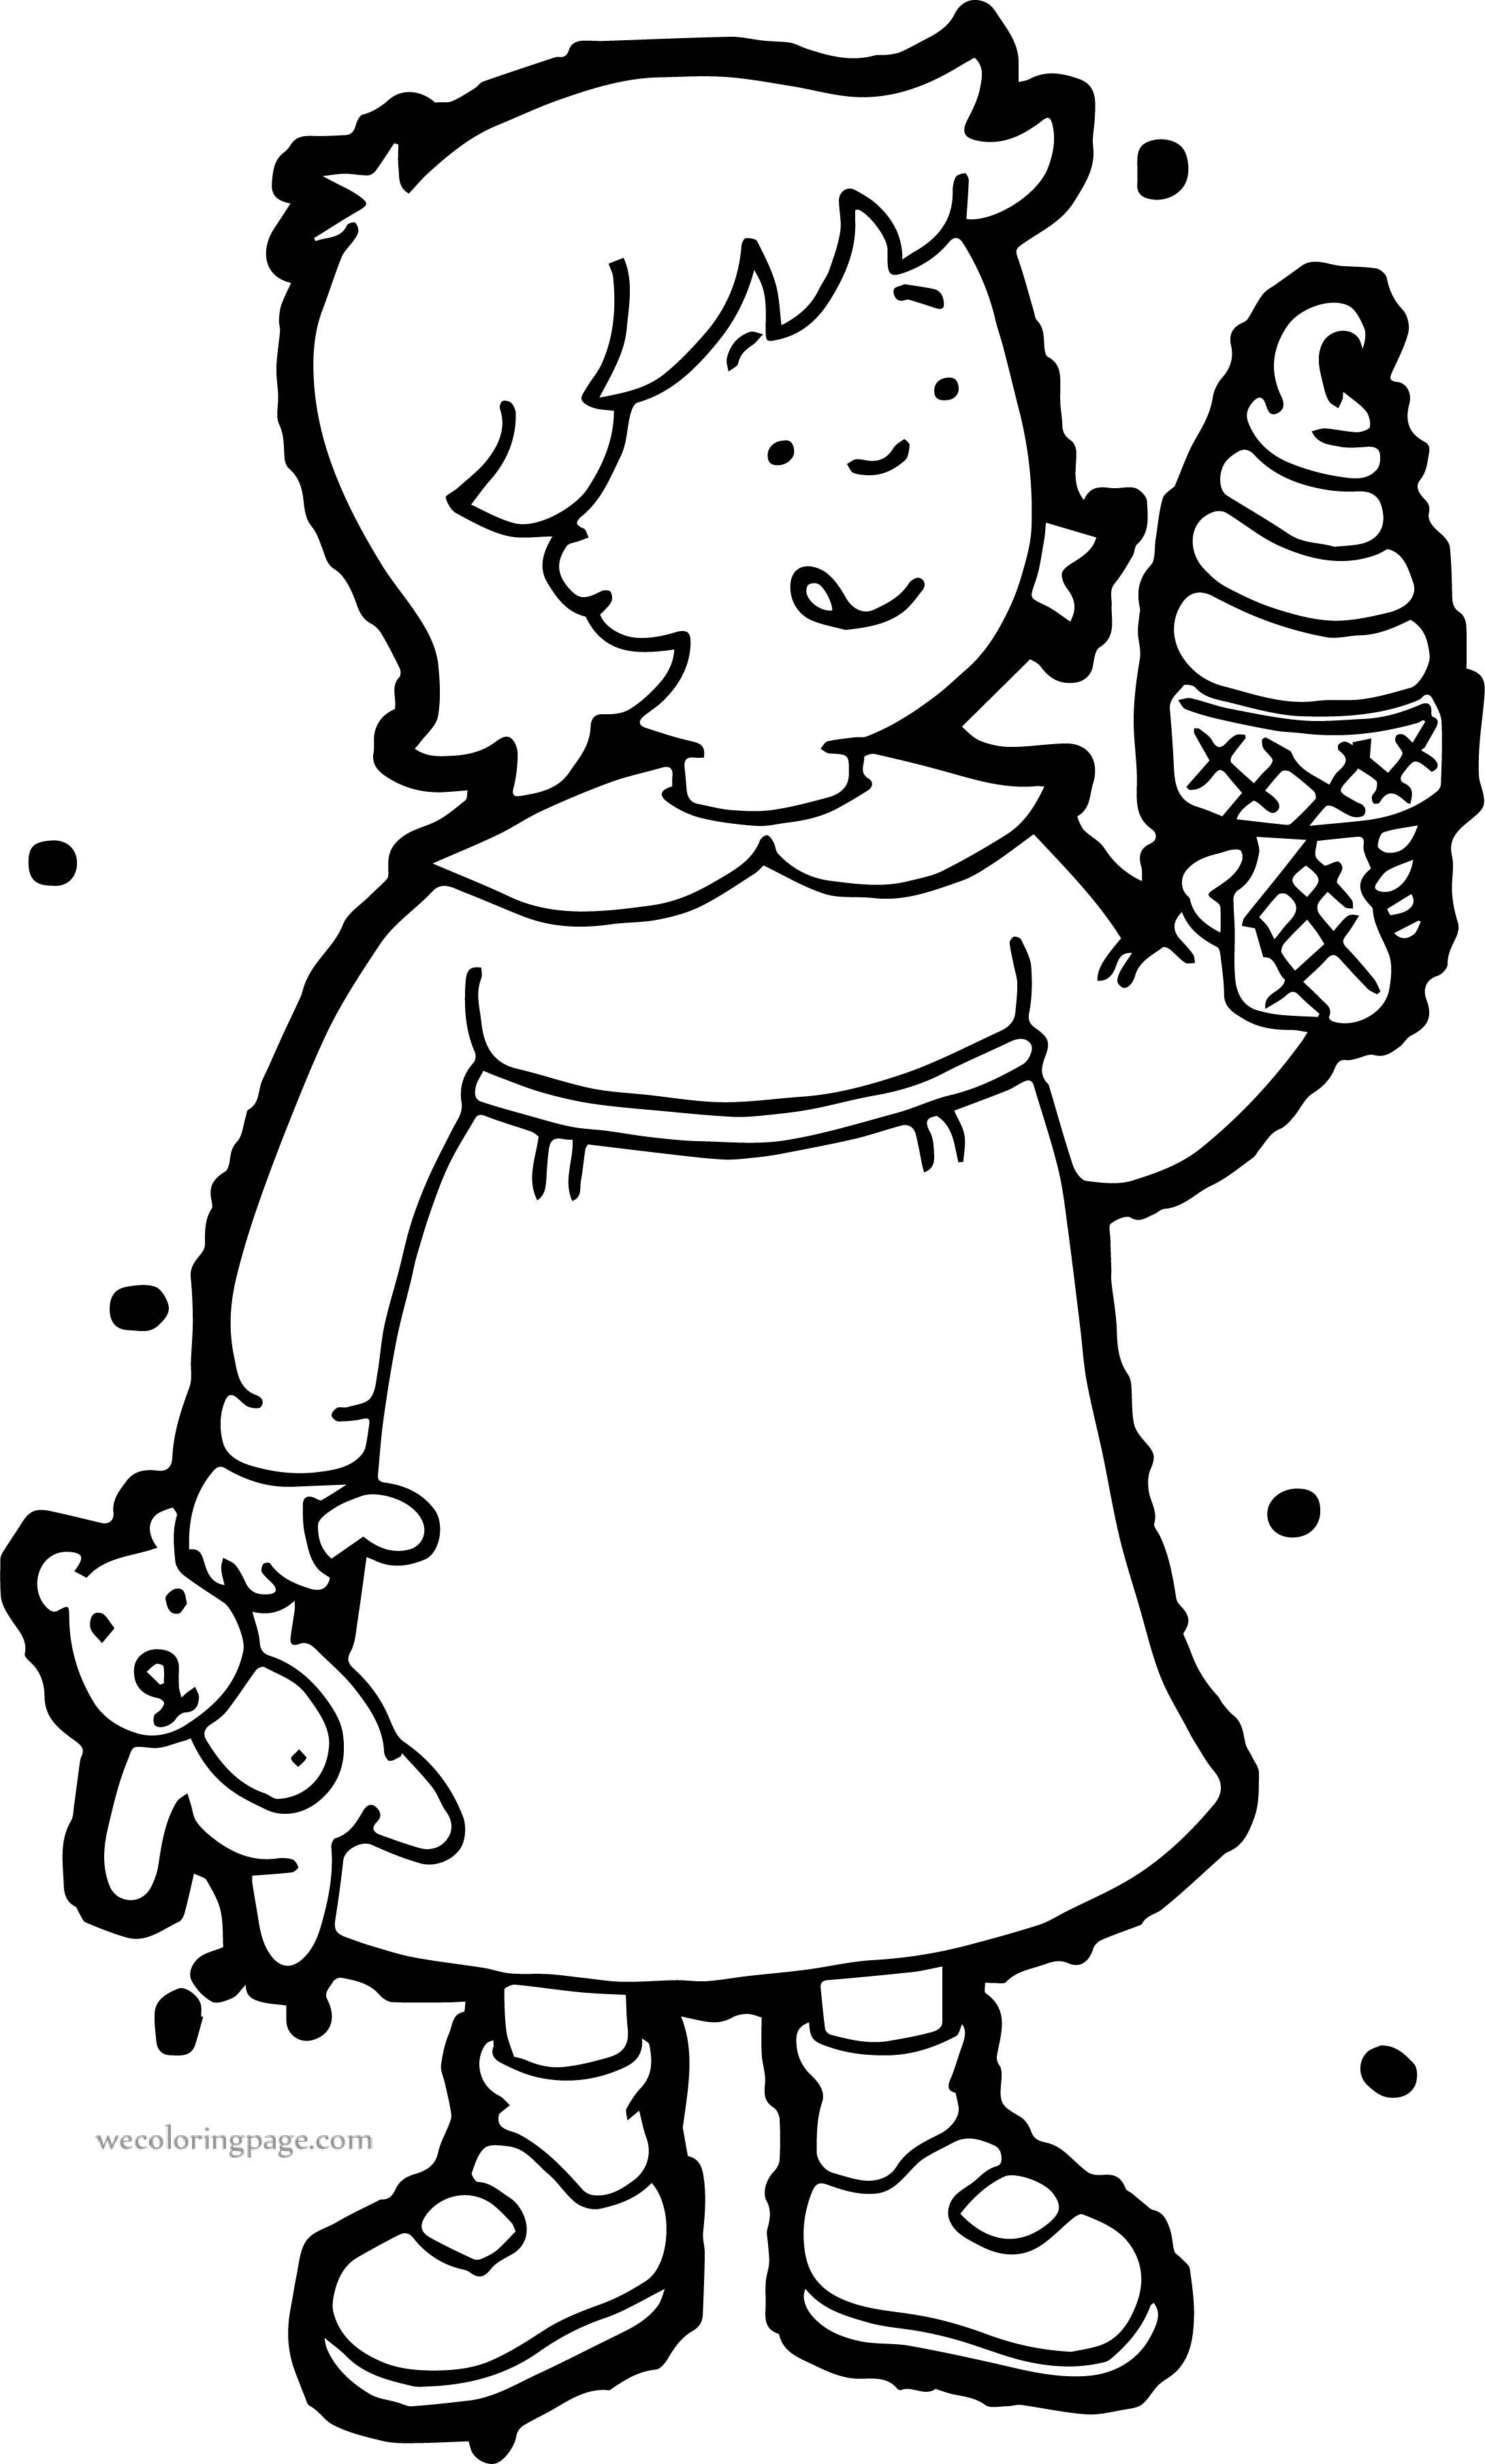 Caillou Sister Ice Cream Coloring Page